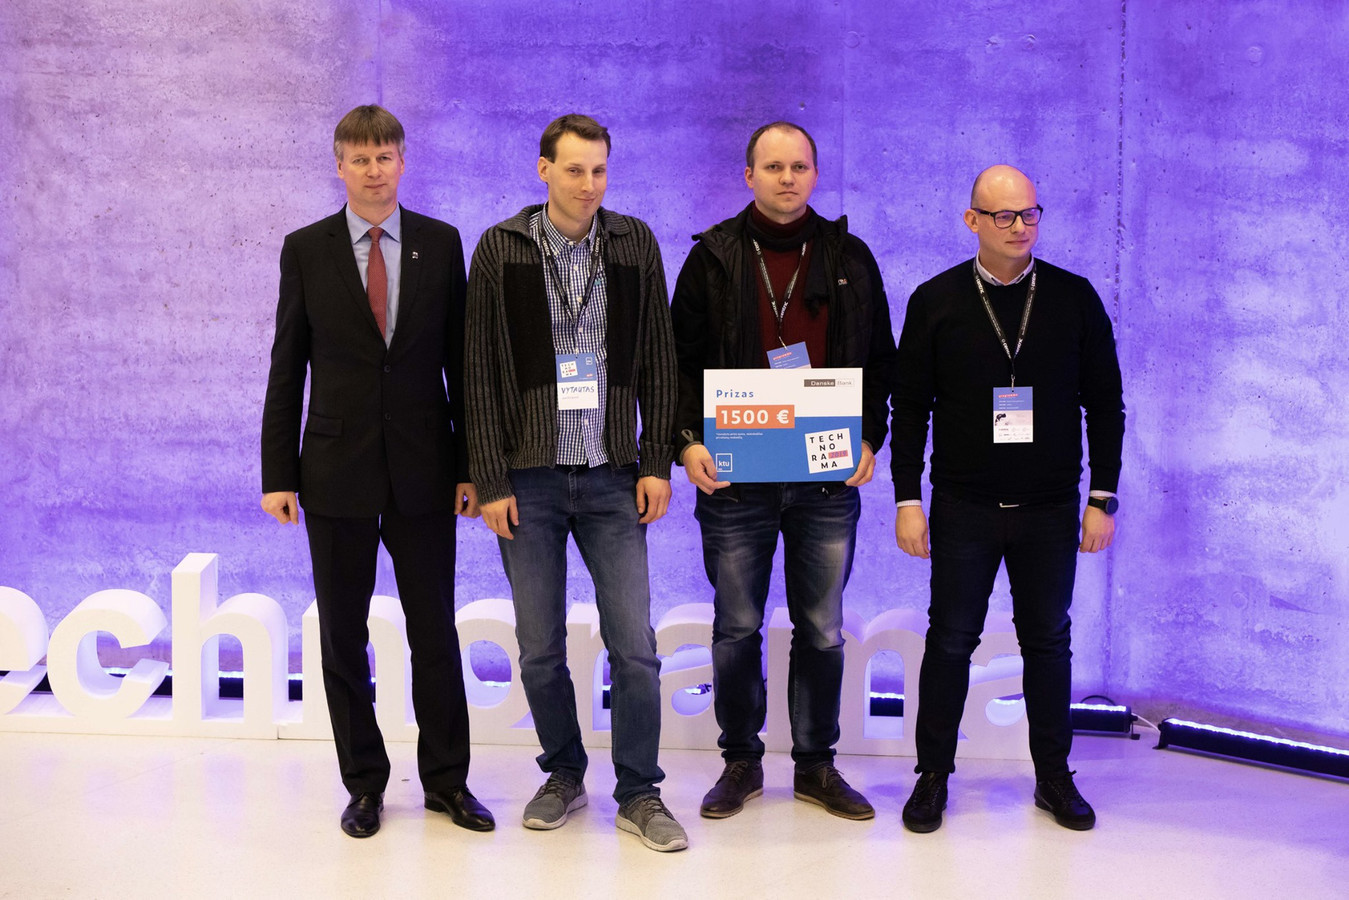 """""""Technorama 2019"""" laimėjau pagrindinį prizą: https://fcea.ktu.edu/news/innovation-exhibition-and-competition-technorama-2019-the-record-prize-fund-and-60-future-shaping-inventions/"""